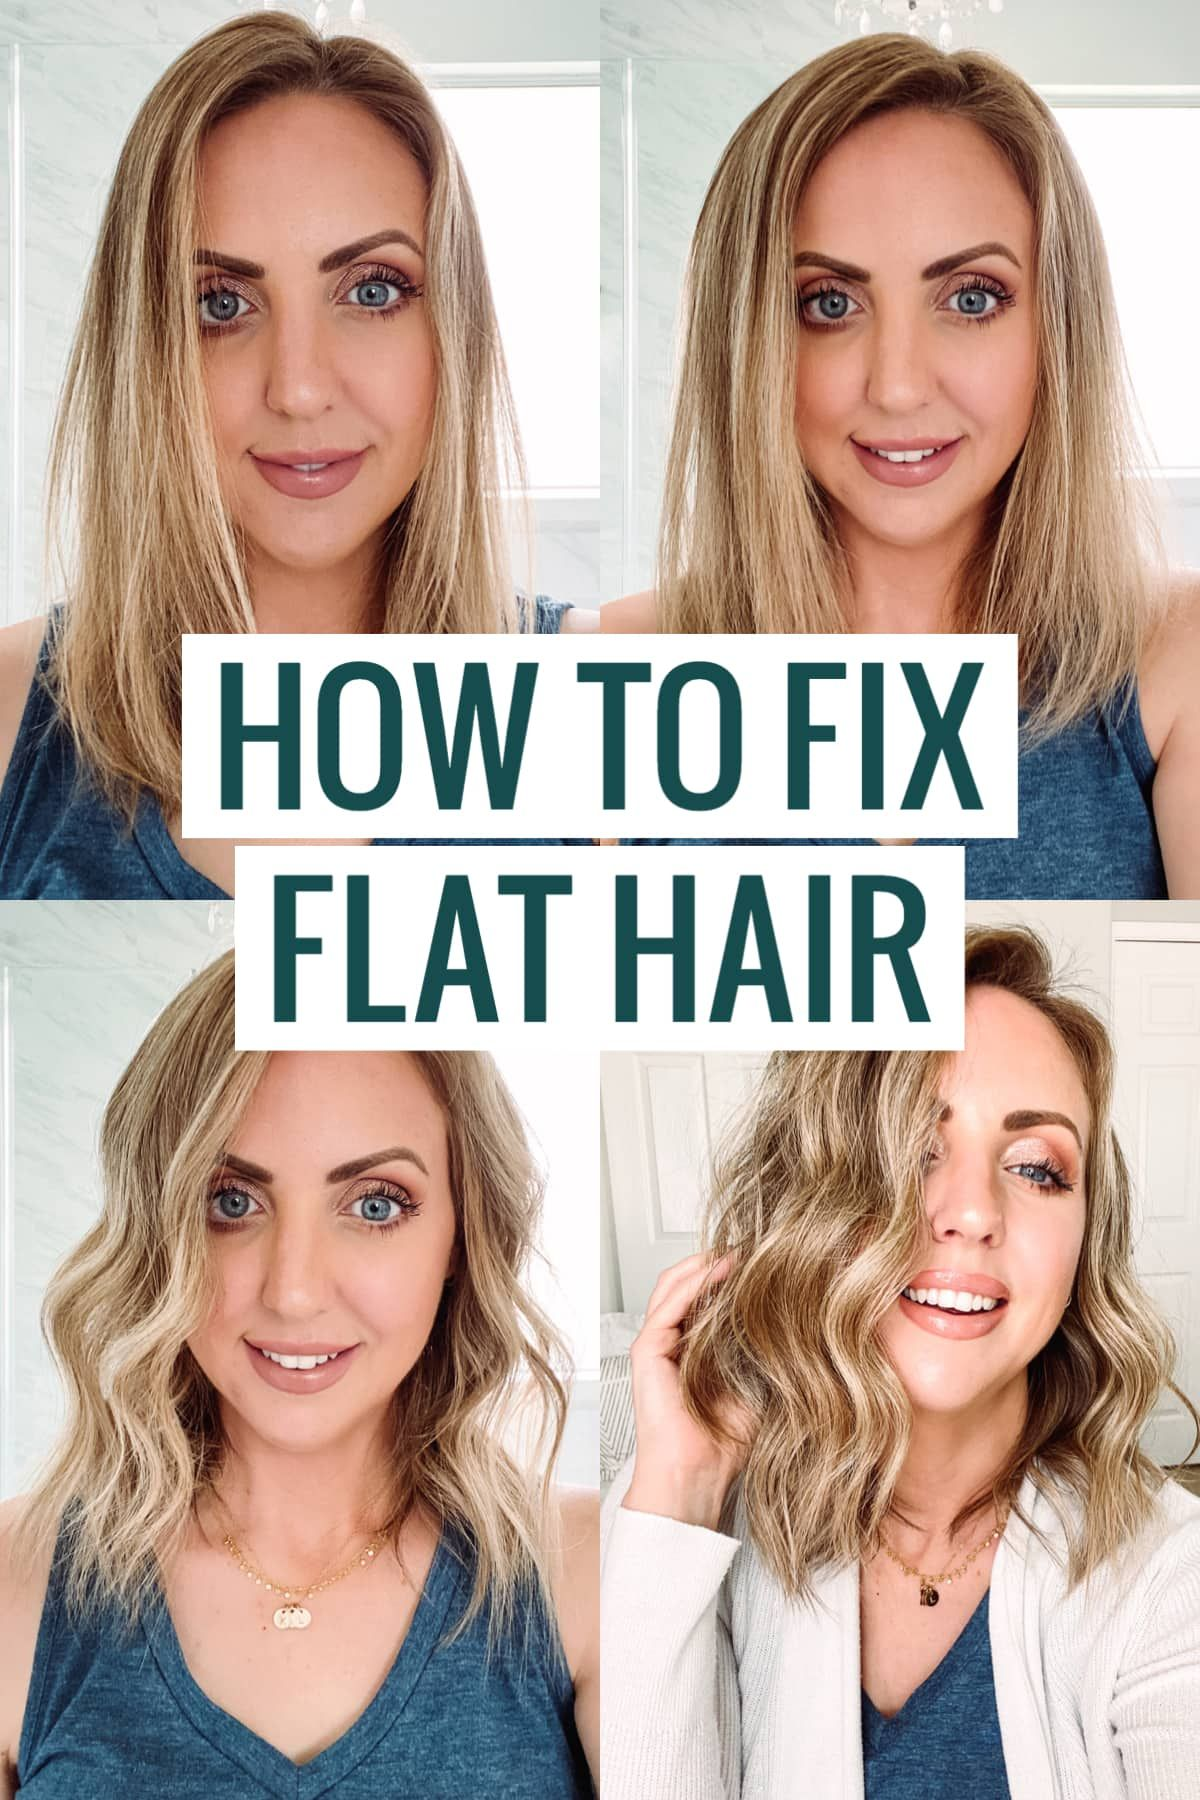 How to fix flat hair bed head little tease review demo